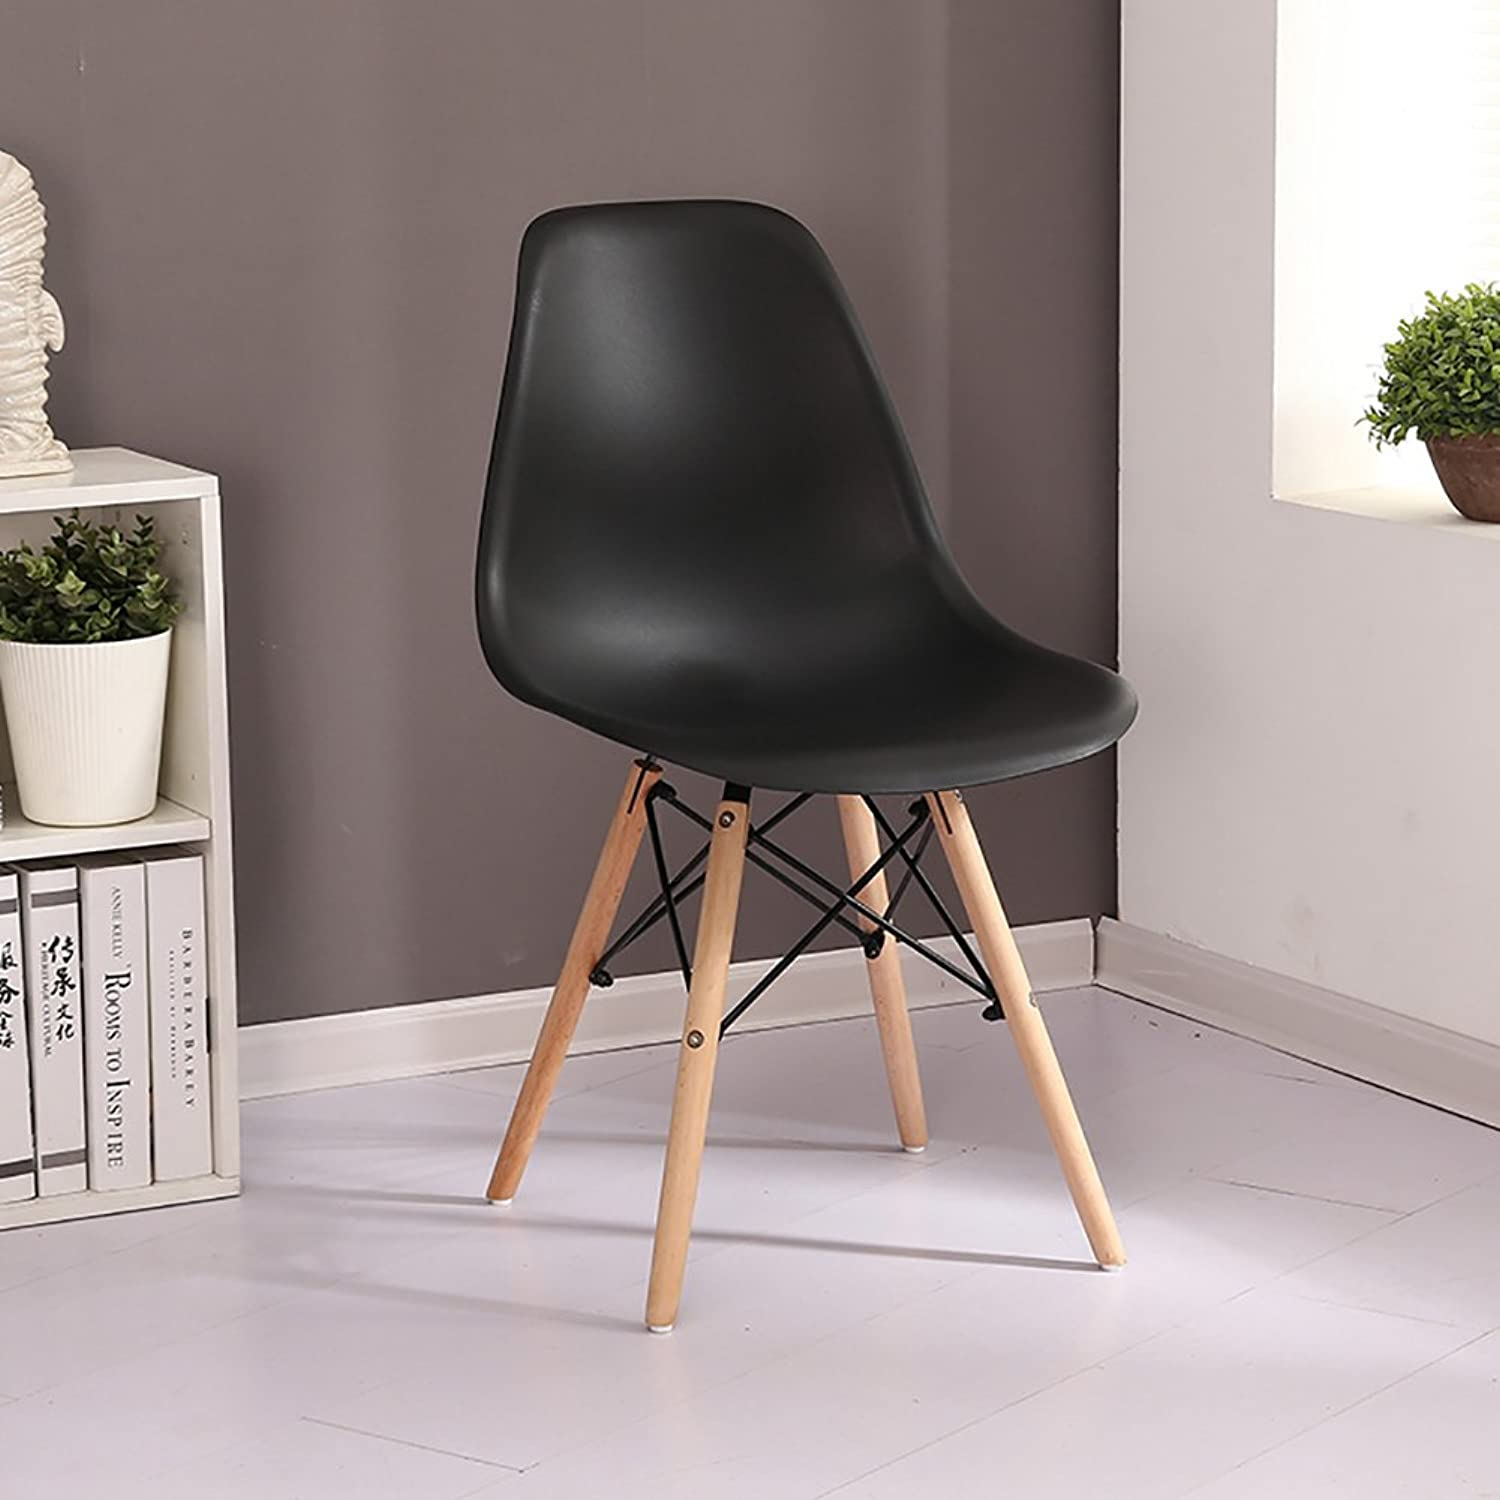 ALUS- Eiffel Style Solid Wood Dining Chairs,PP Materials Living Room Office Espresso Backrest Chairs (color   Black, Size   41cmX39cmX41cm)